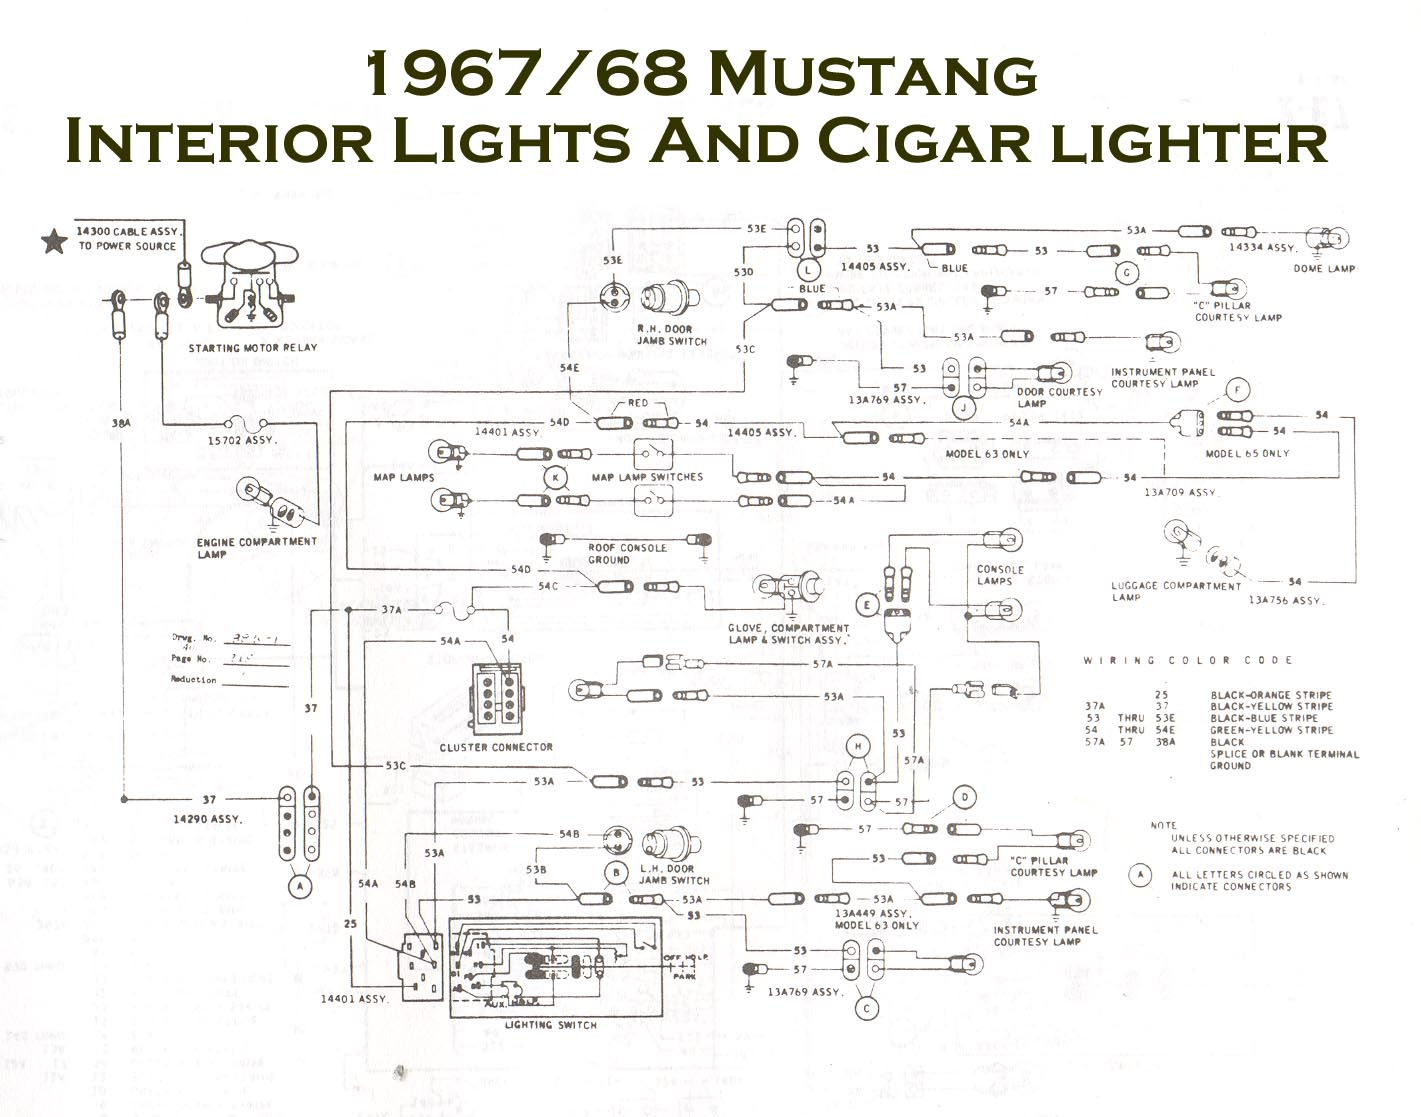 1967 68_console_wiring_diagram vintage mustang wiring diagrams mustang wiring harness at crackthecode.co